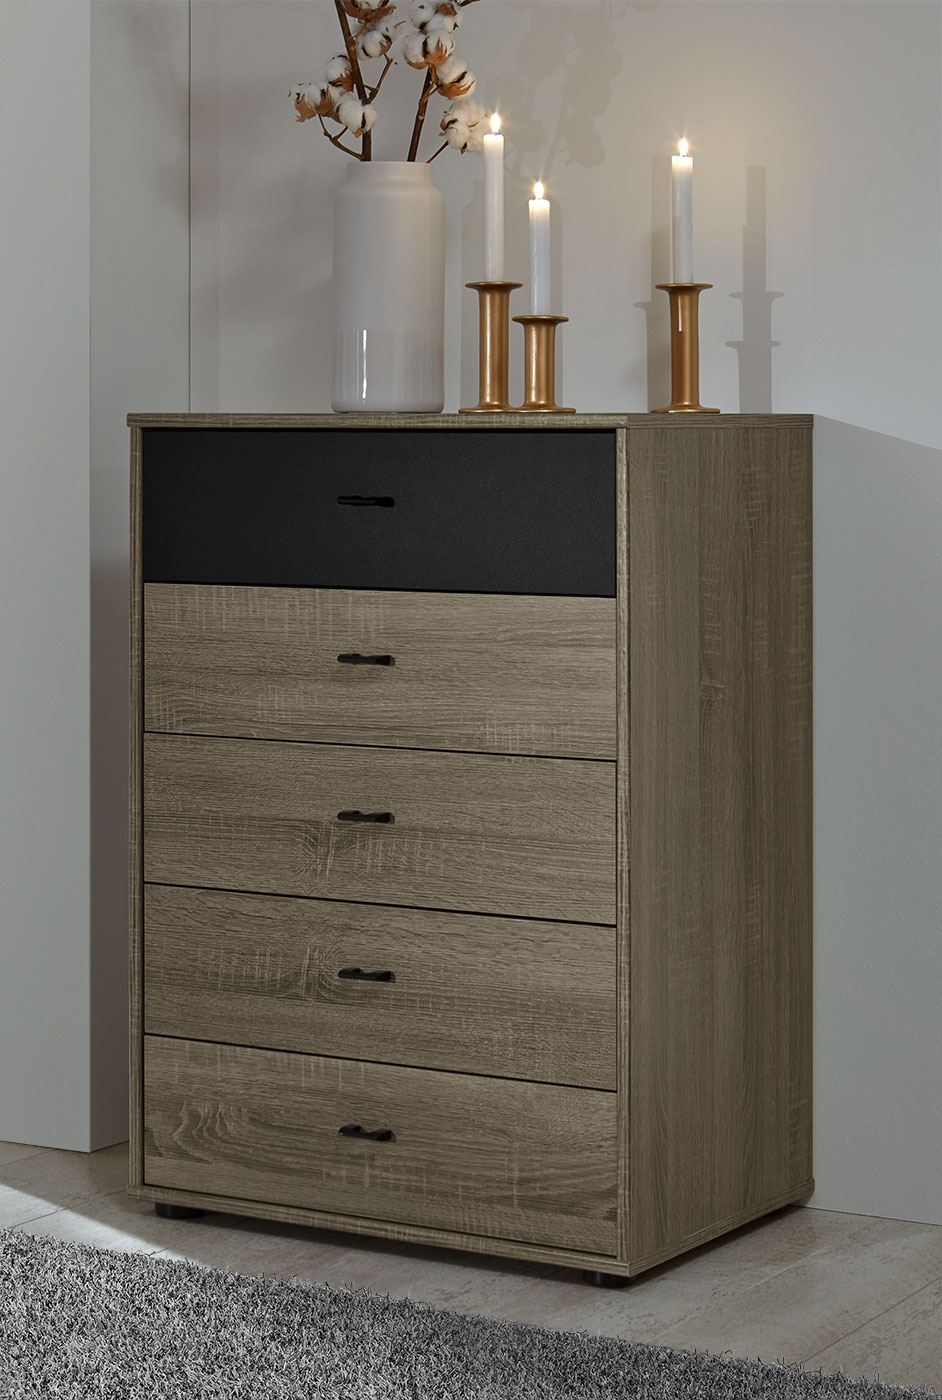 schubladenkommode mit 60 cm breite in dunklem dekor korba. Black Bedroom Furniture Sets. Home Design Ideas